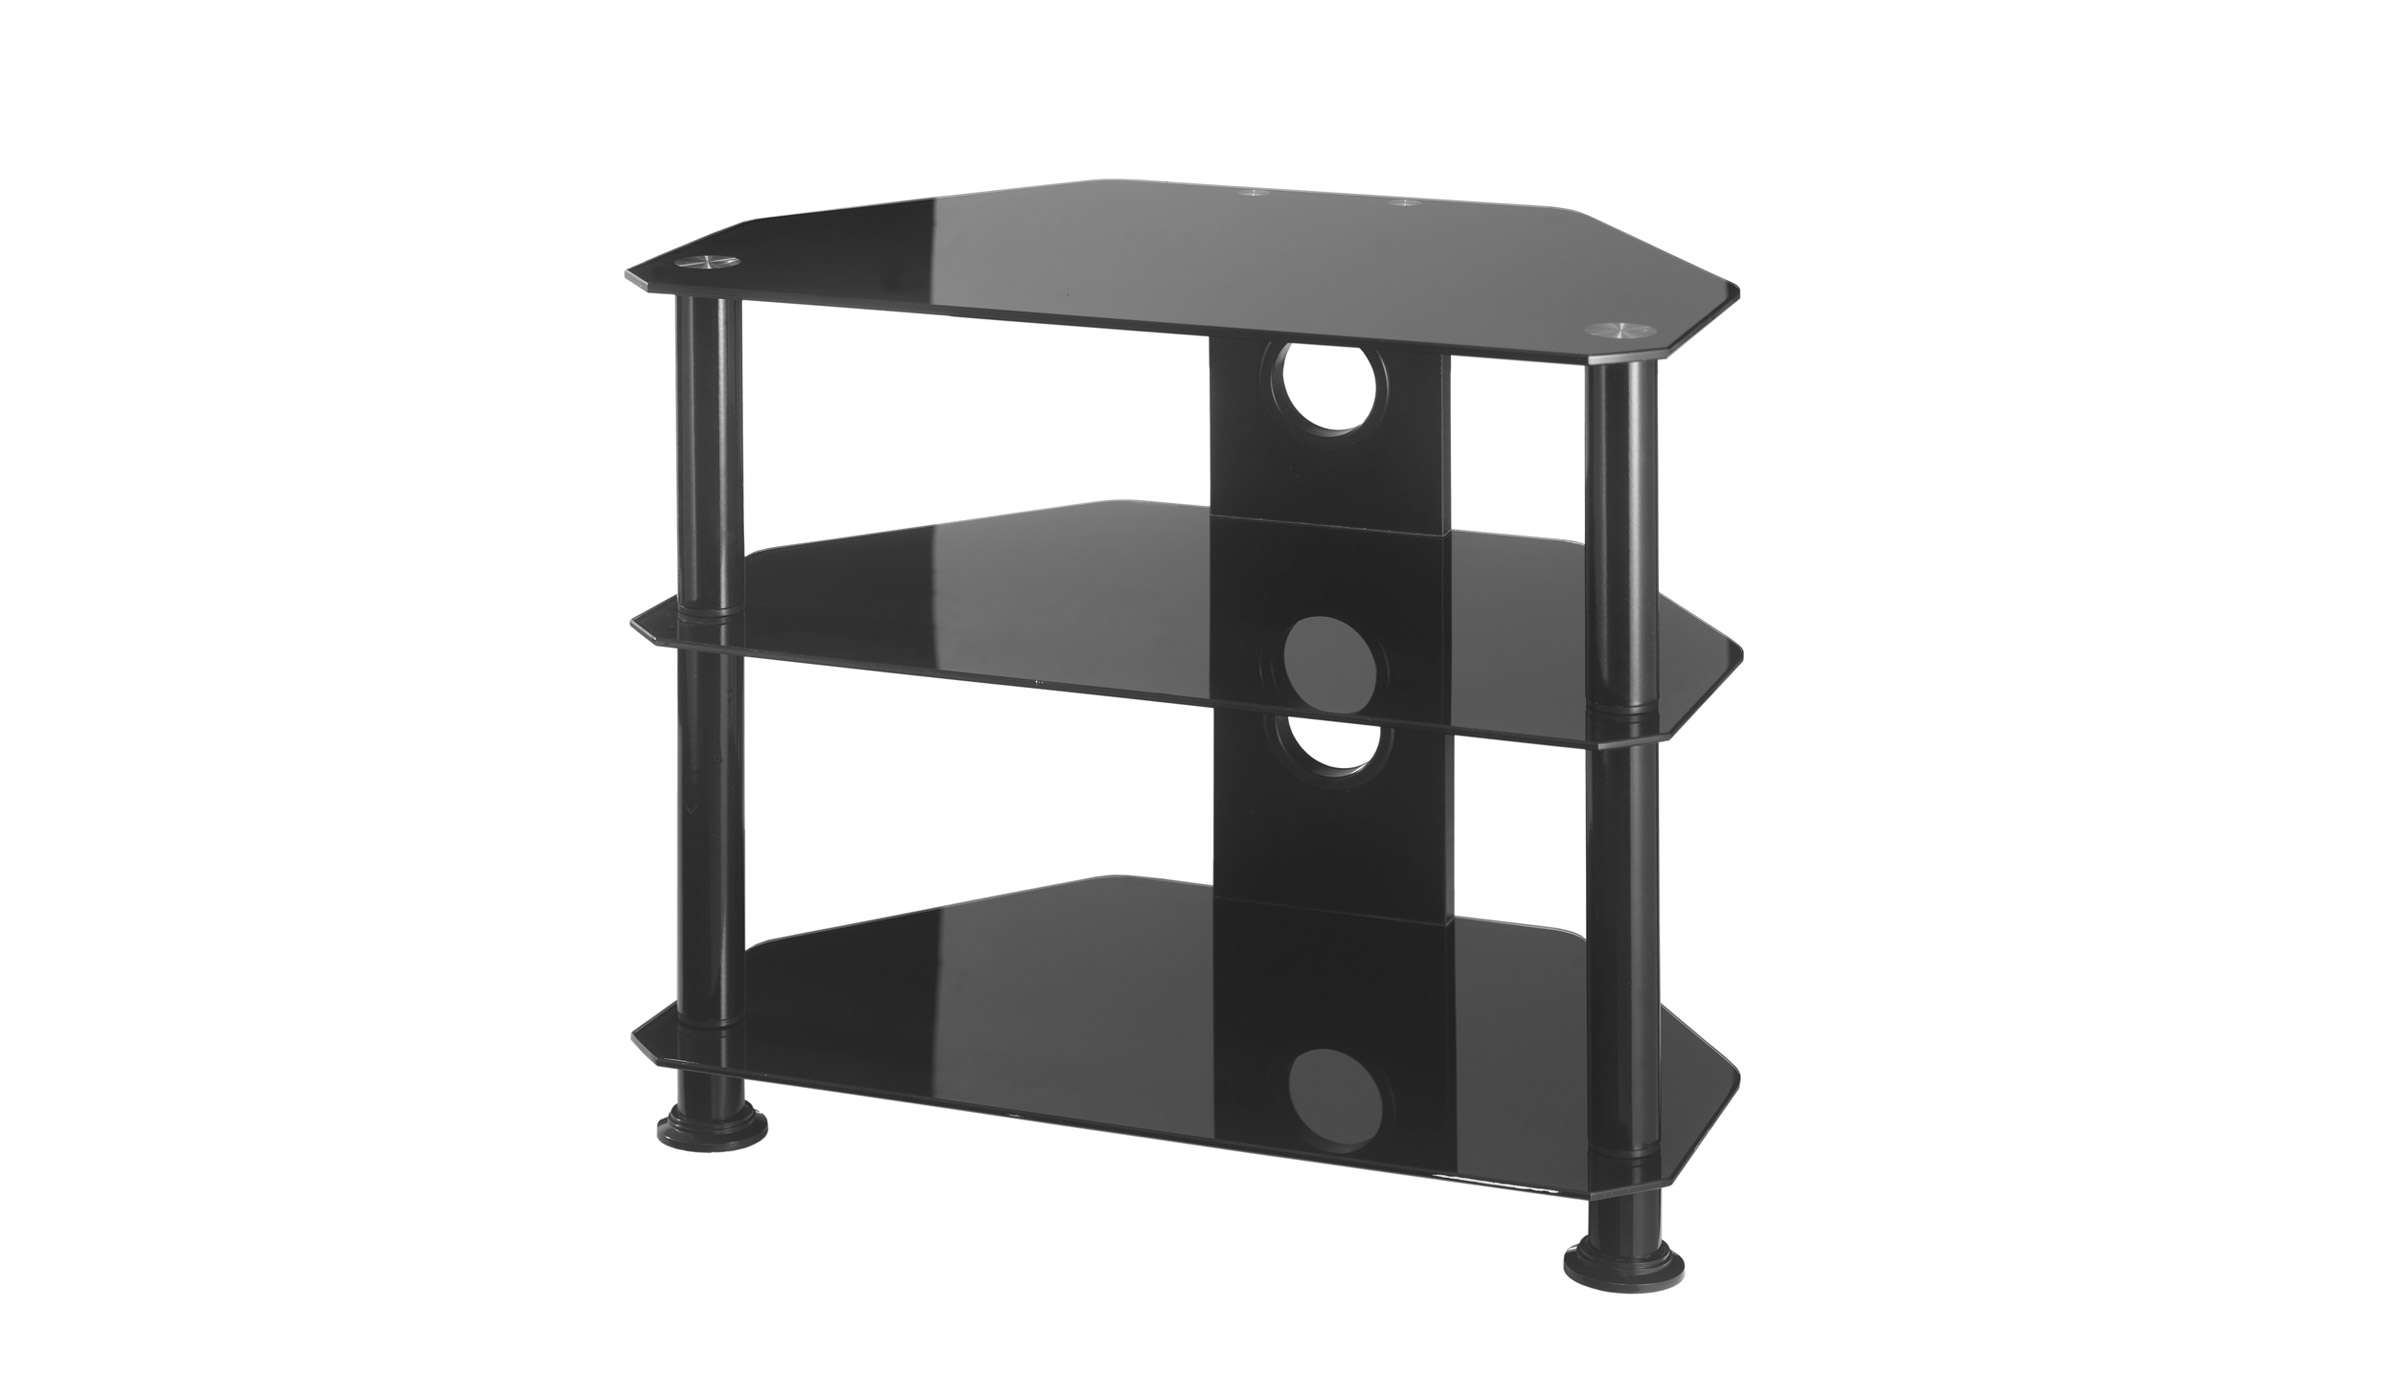 Small Glass Corner Tv Stand Up To 26 Inch Tv | Mmt Db600 Regarding Black Glass Tv Cabinets (View 17 of 20)